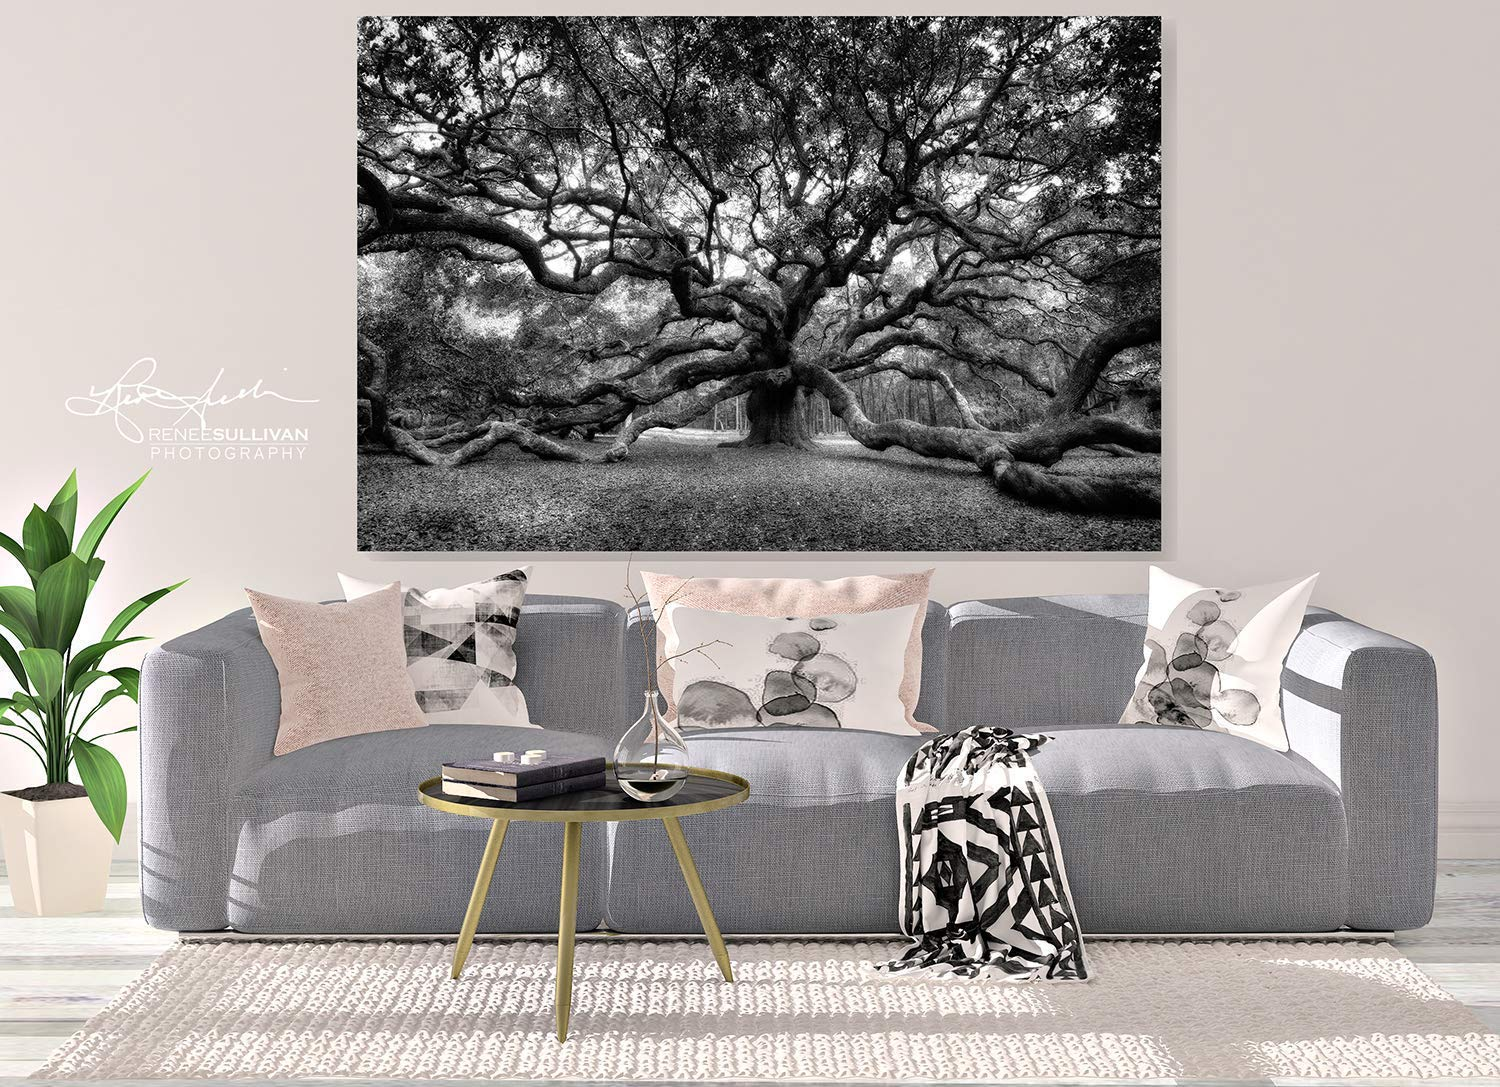 Angel oak charleston sc canvas or metal ready to hang black white fine art photography live oak tree small to extra large wall art 7x5 to 72x48 inches